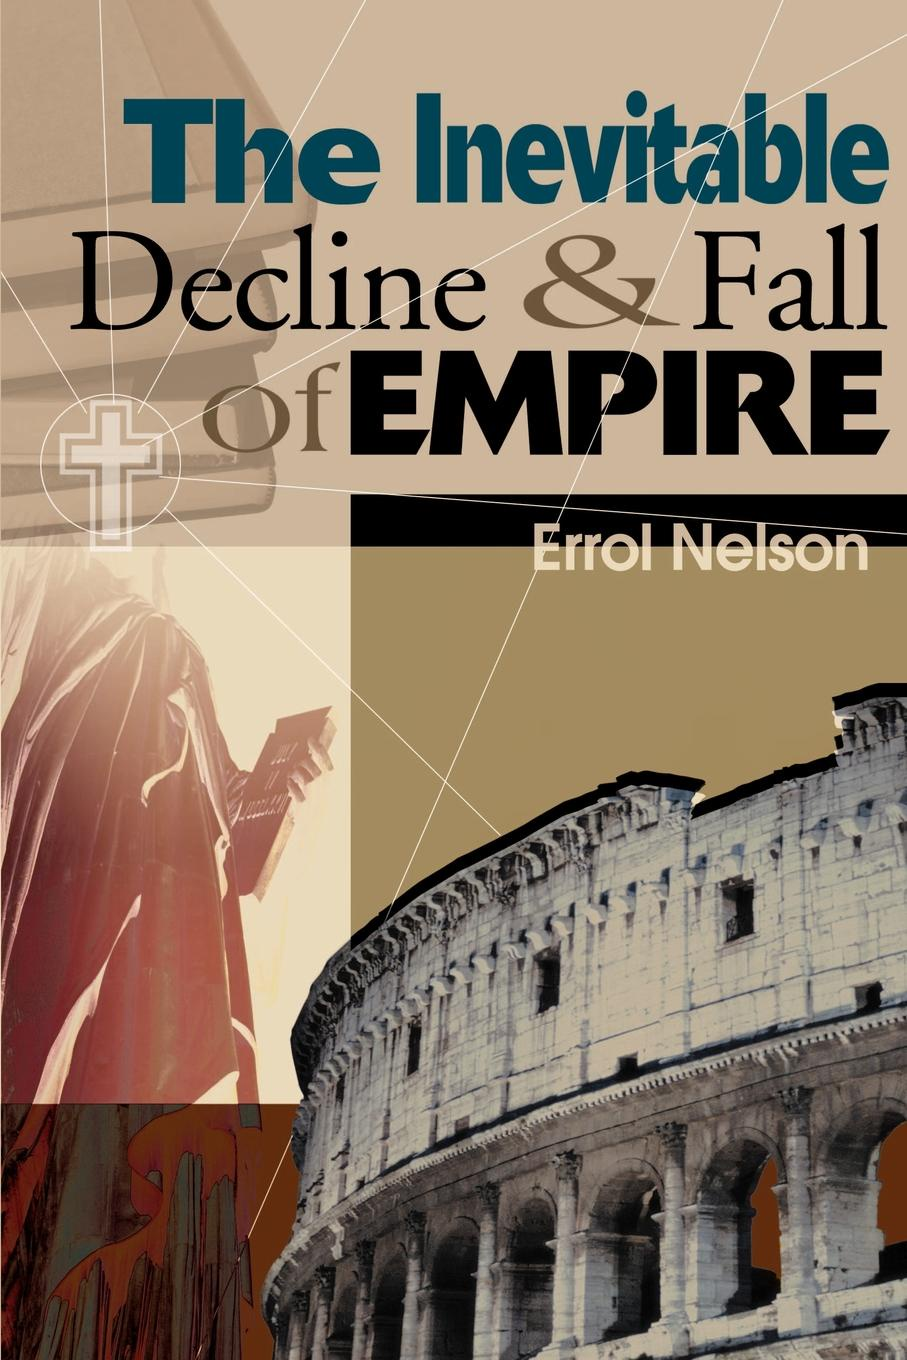 The Inevitable Decline and Fall of Empire. Errol Nelson